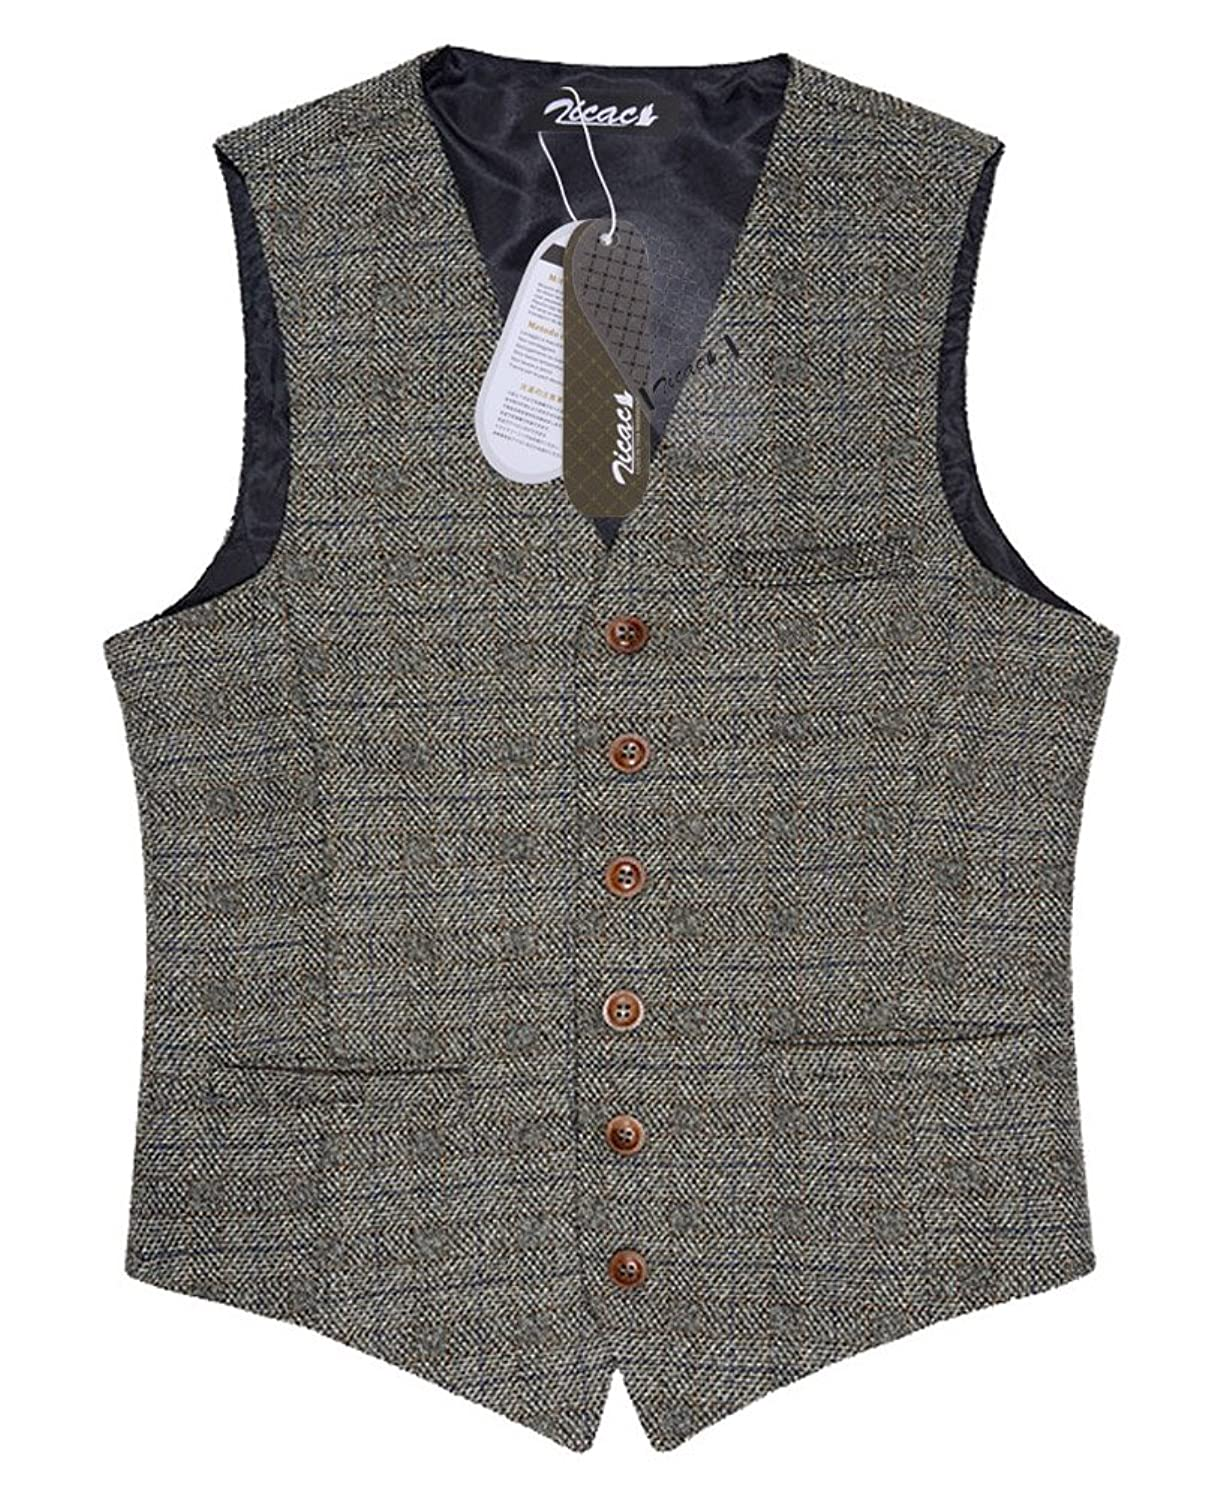 Men's Vintage Christmas Gift Ideas Zicac Mens Unique Advanced Custom Vest Skinny Wedding Dress Waistcoat $36.99 AT vintagedancer.com